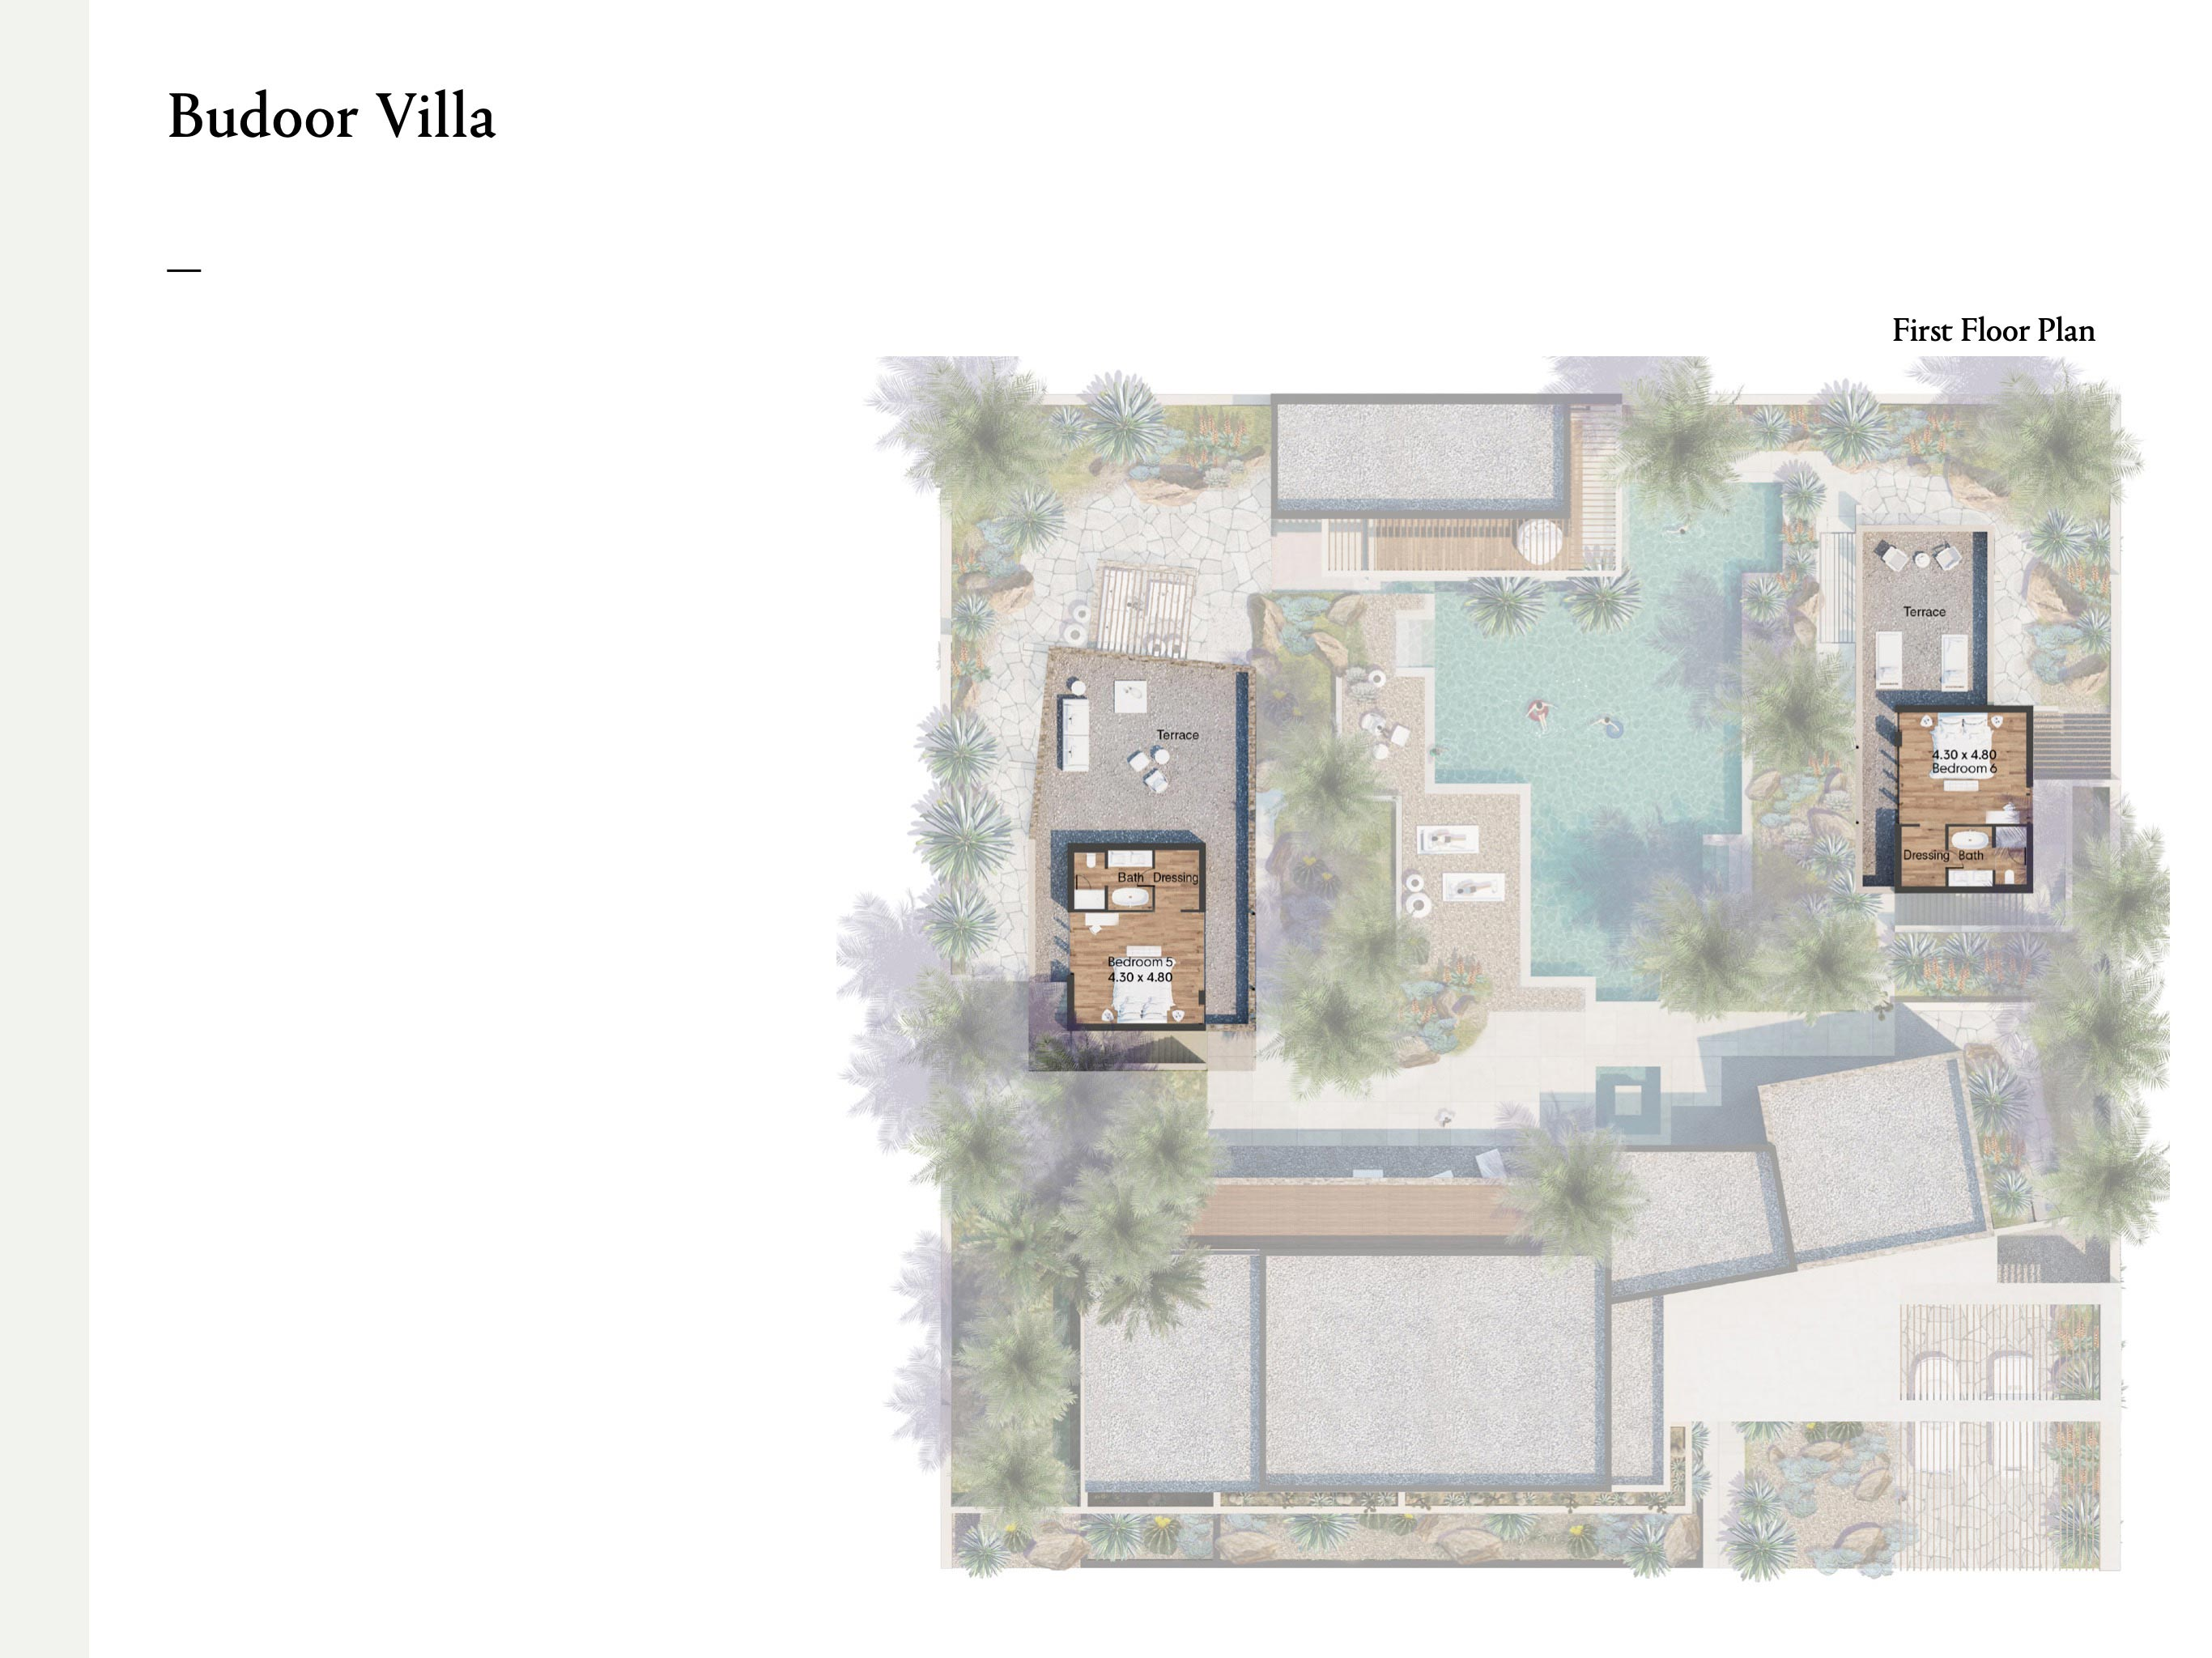 Budoor-Villa-4-Bedroom-Size-419-SQM.